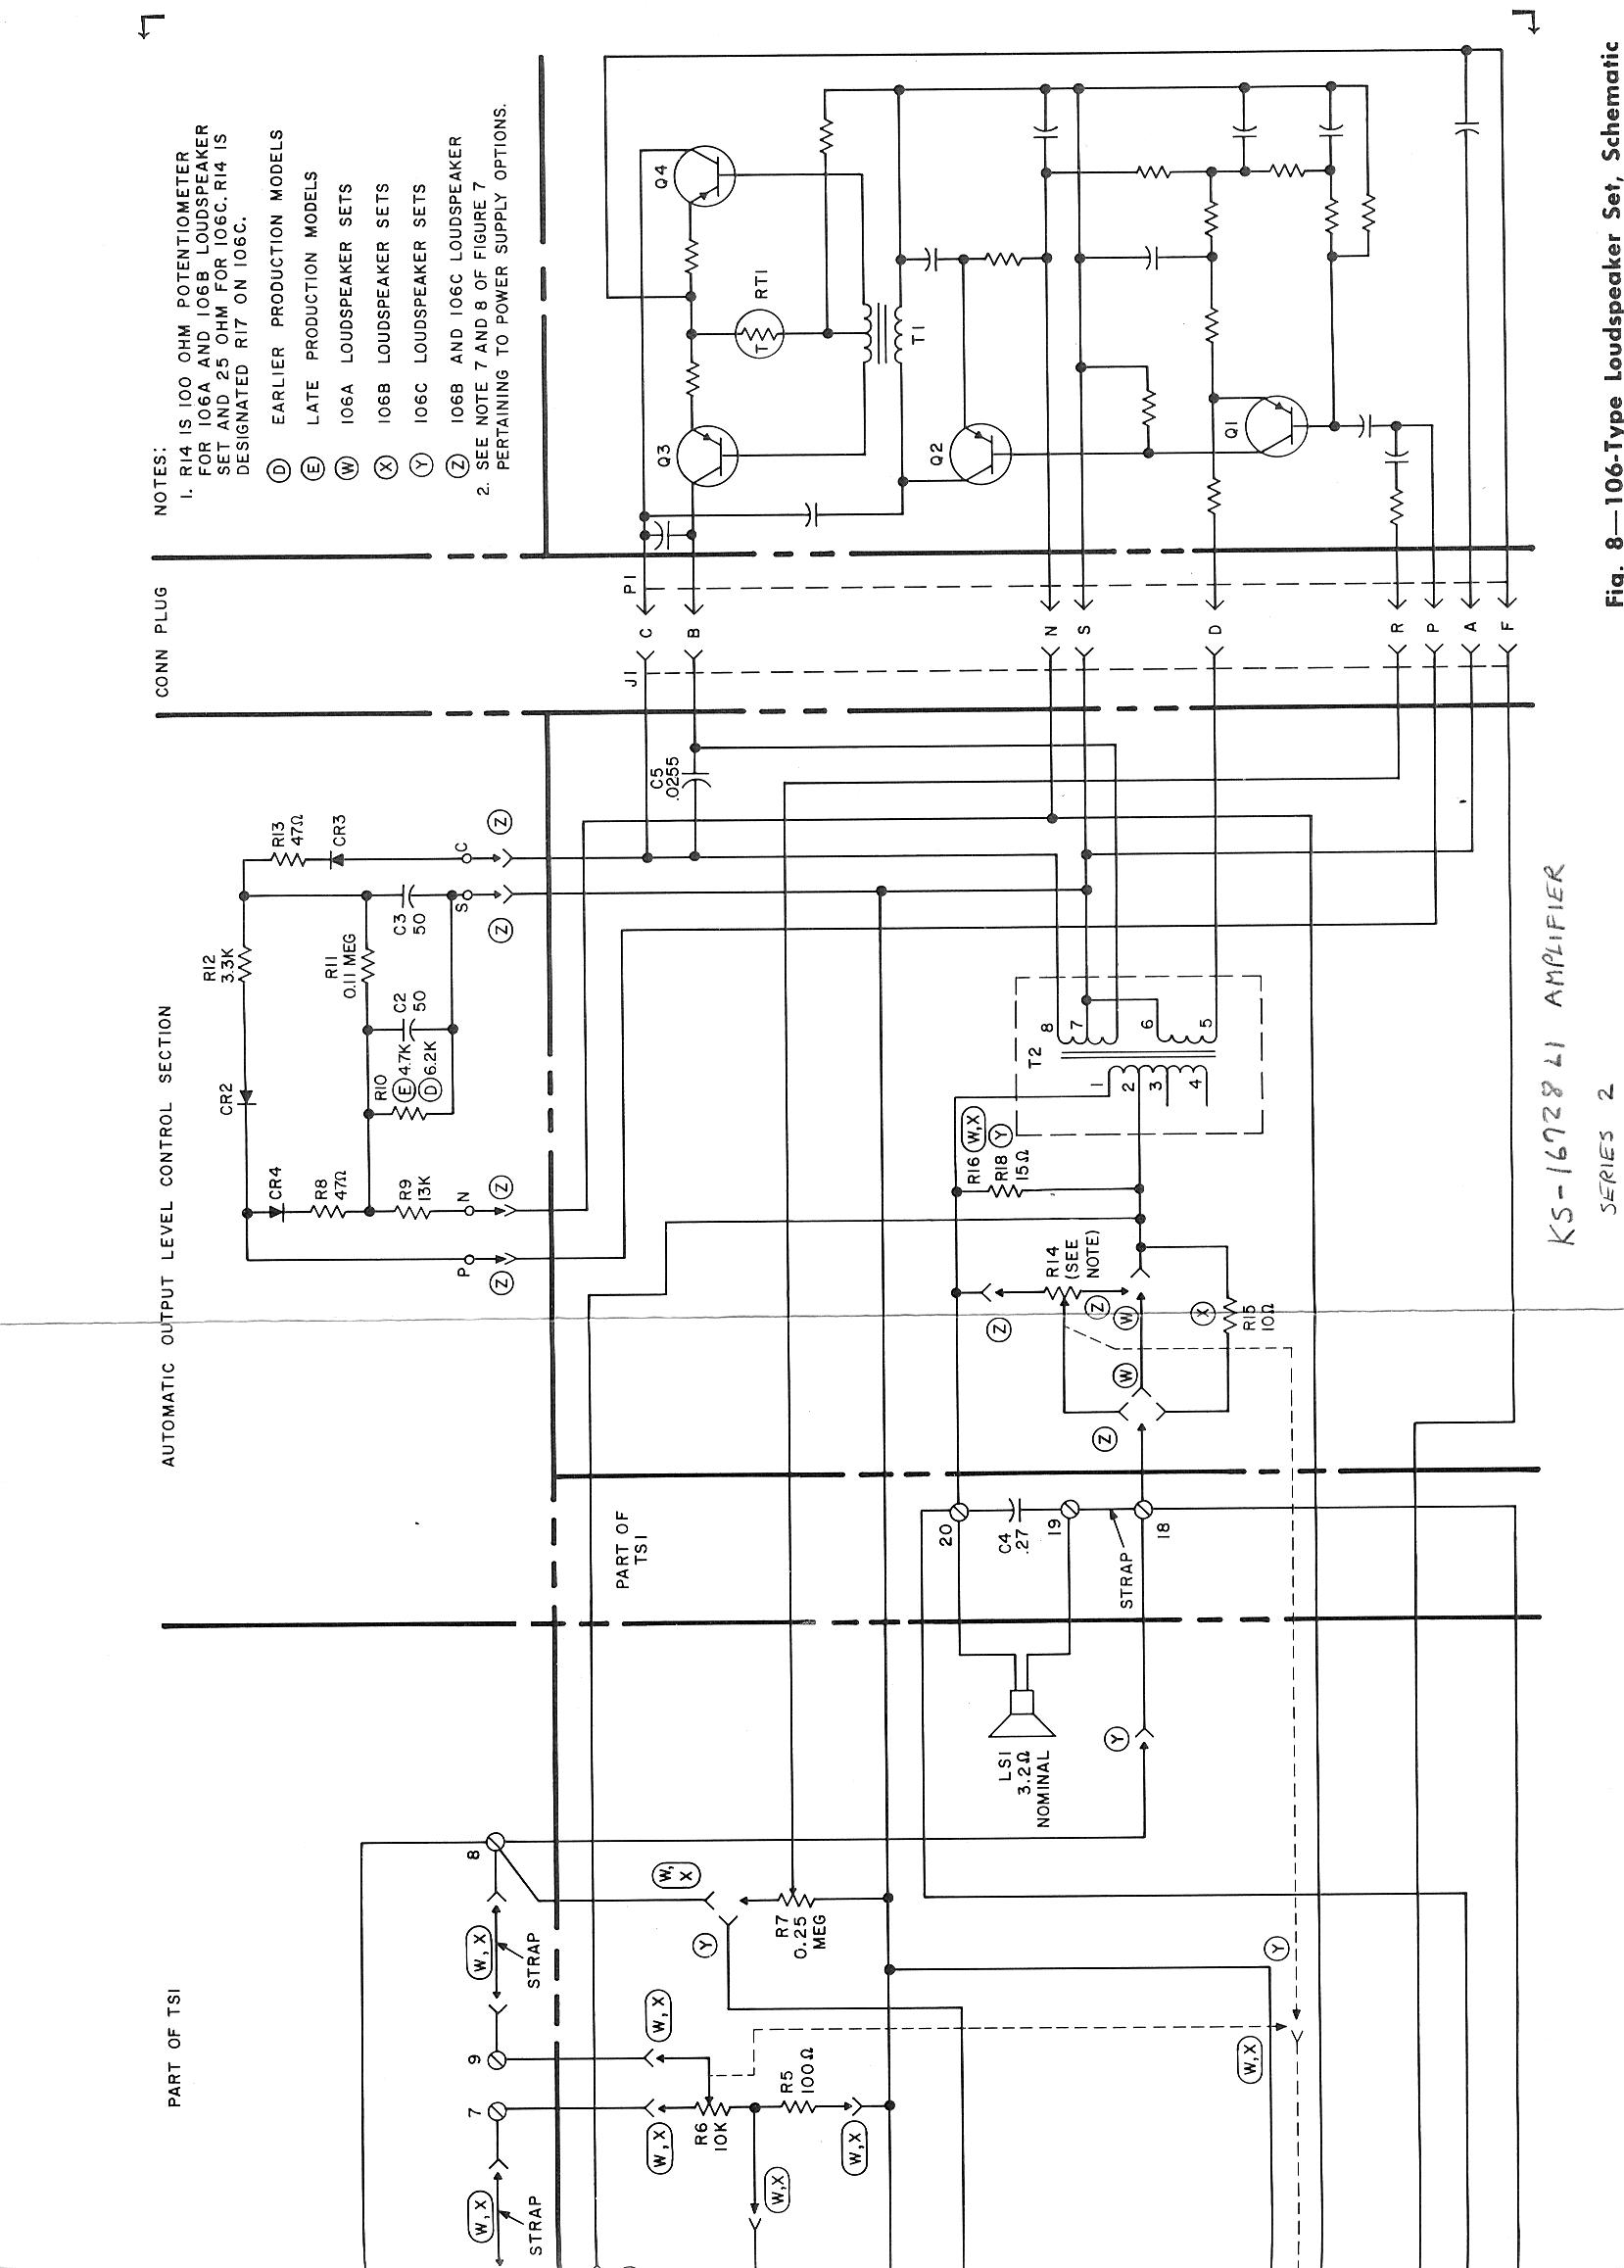 106right_half wiring diagram for international truck the wiring diagram international dt466 idm wire diagram at mifinder.co